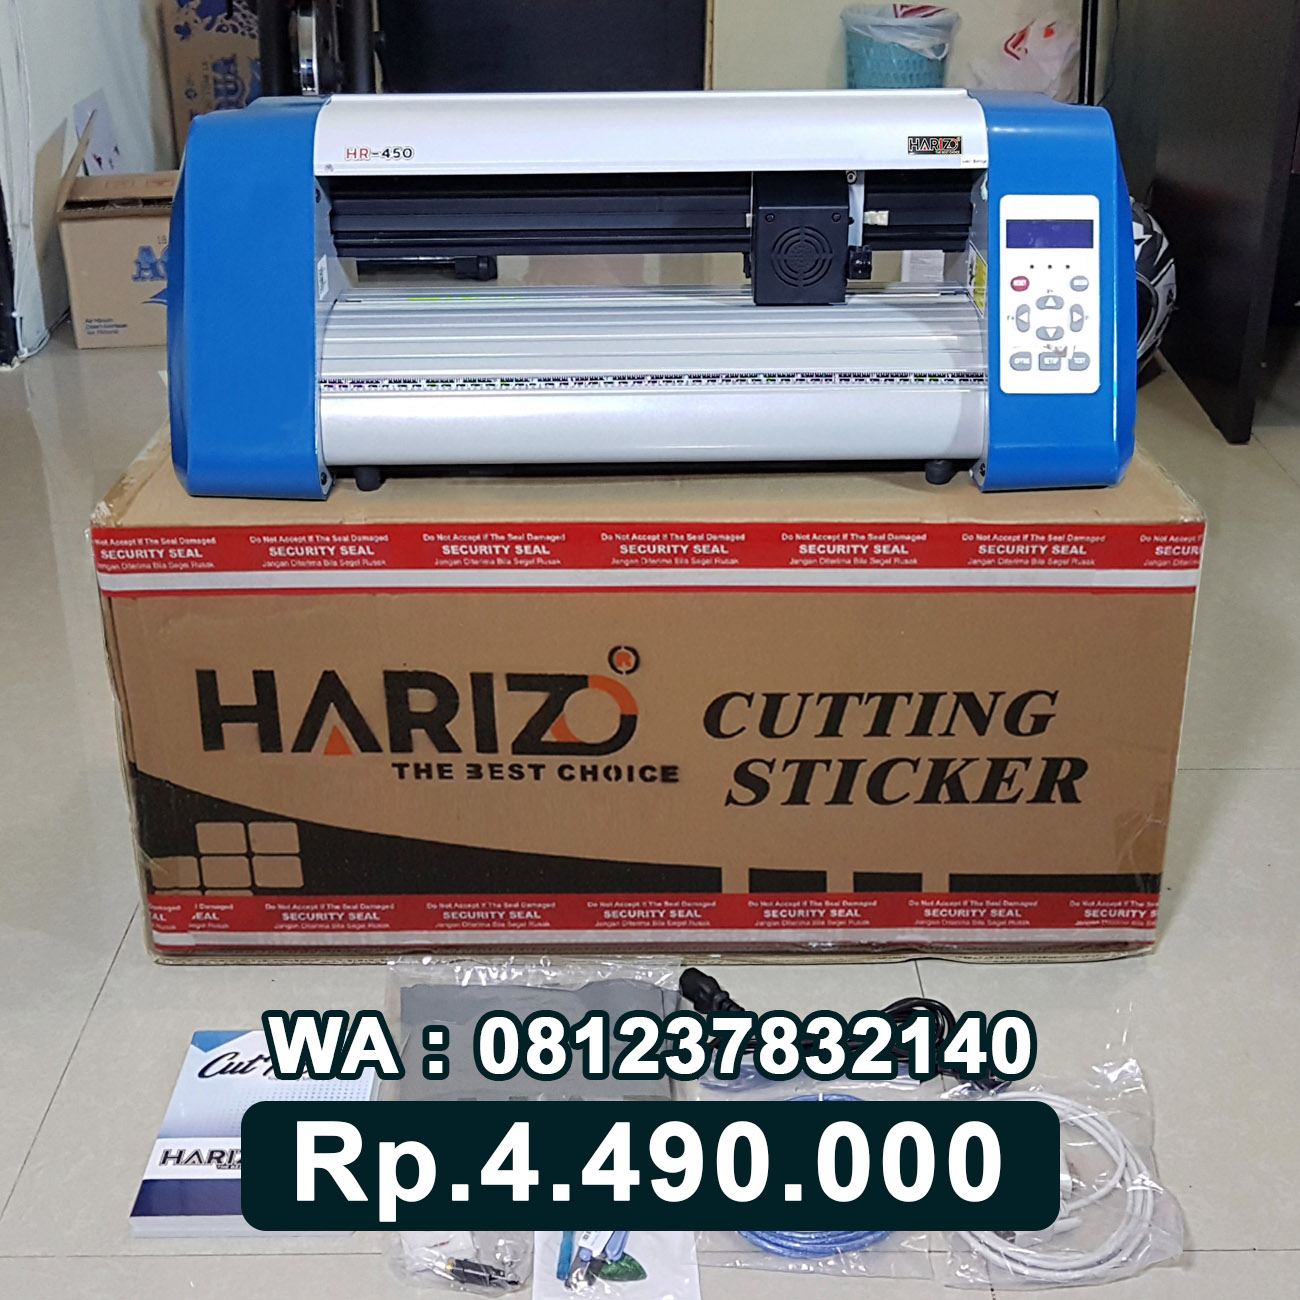 JUAL MESIN CUTTING STICKER HARIZO 450 Pangkalan Bun